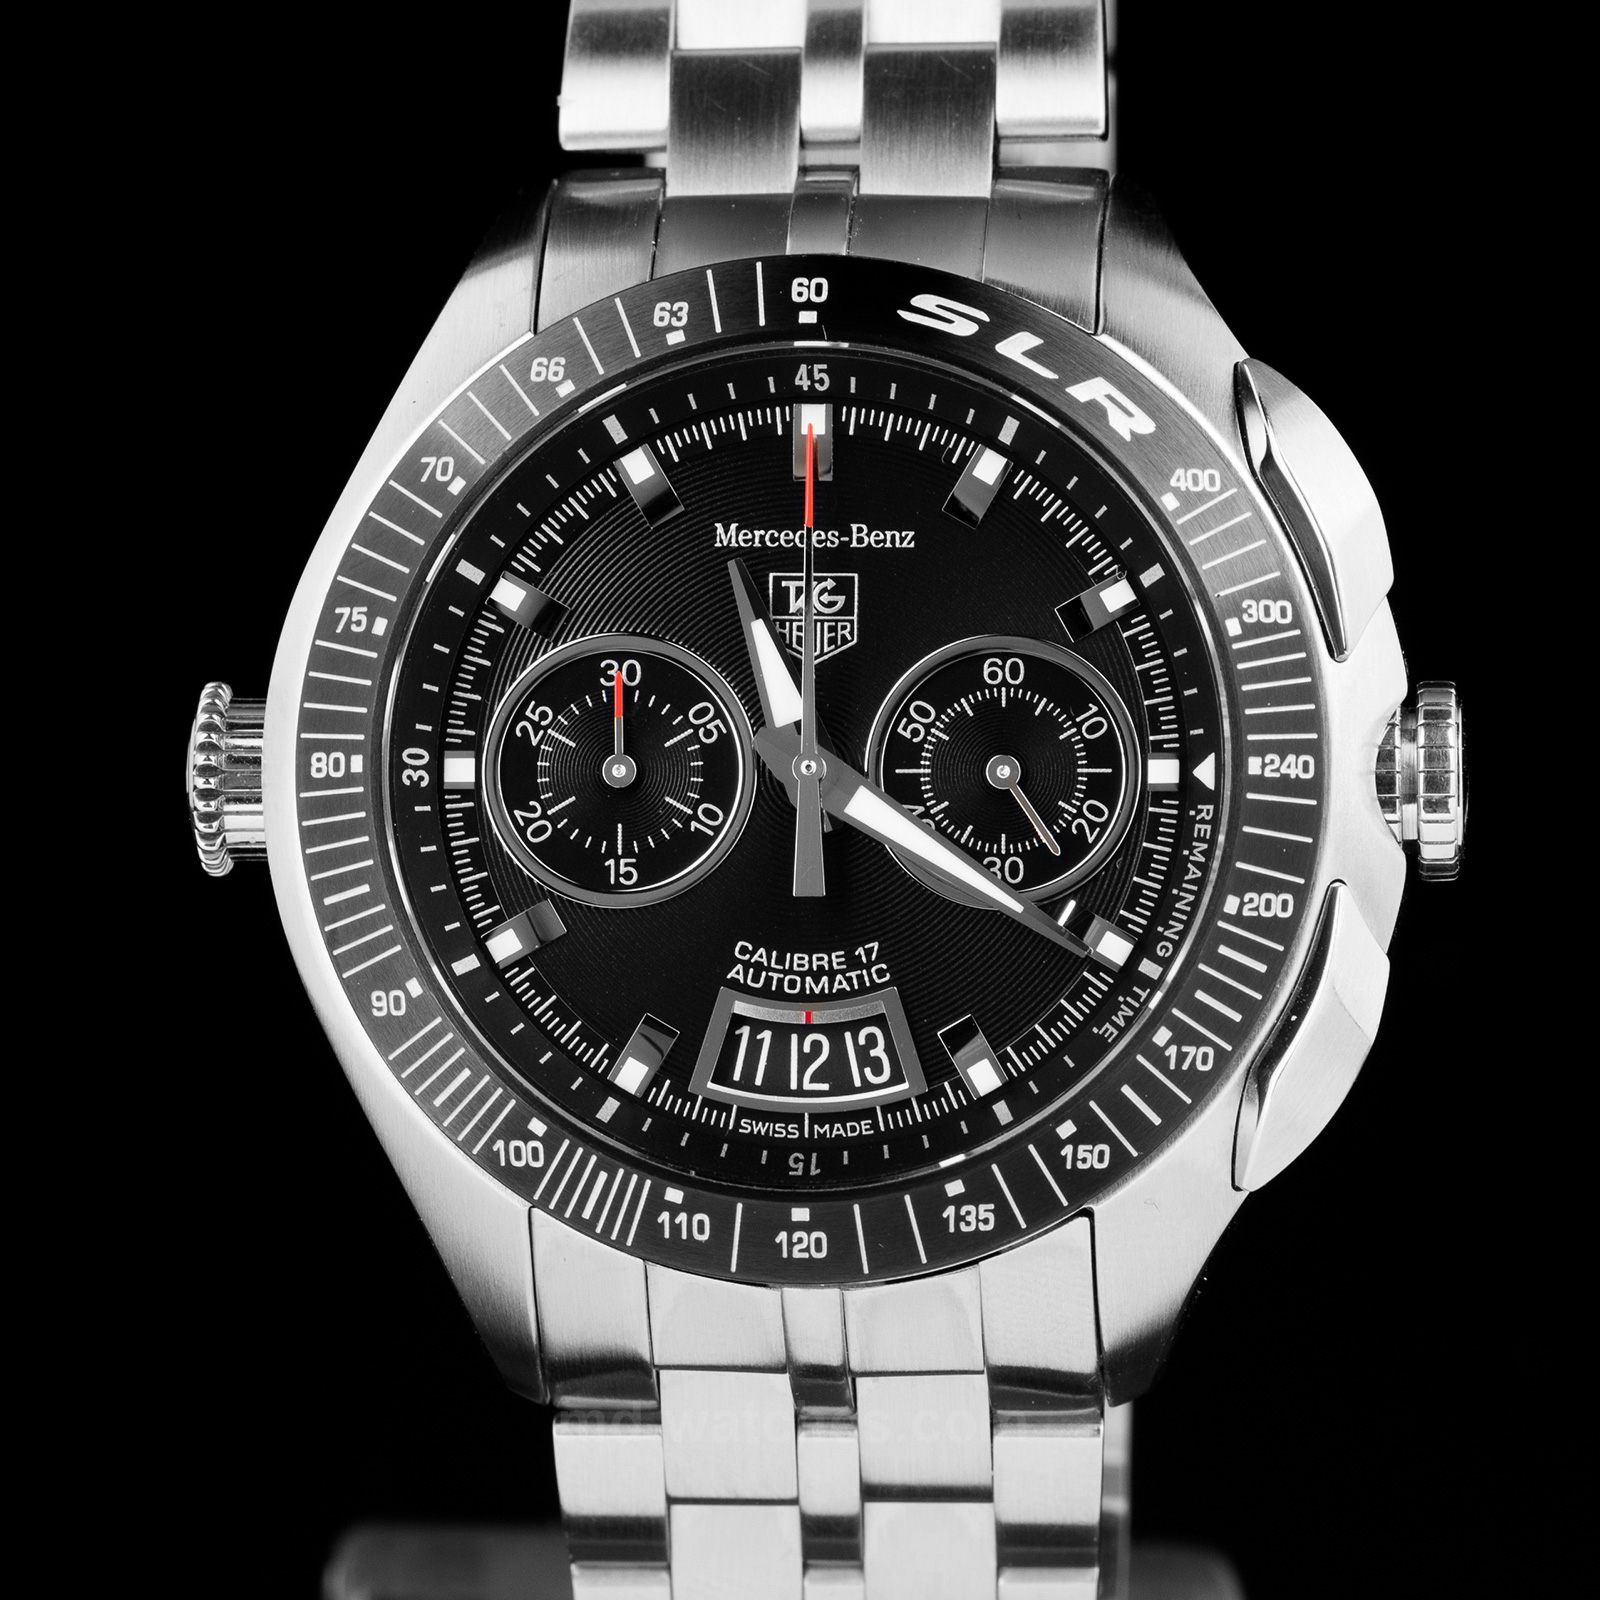 Tag heuer slr for mercedes benz limited edition of for Mercedes benz tag